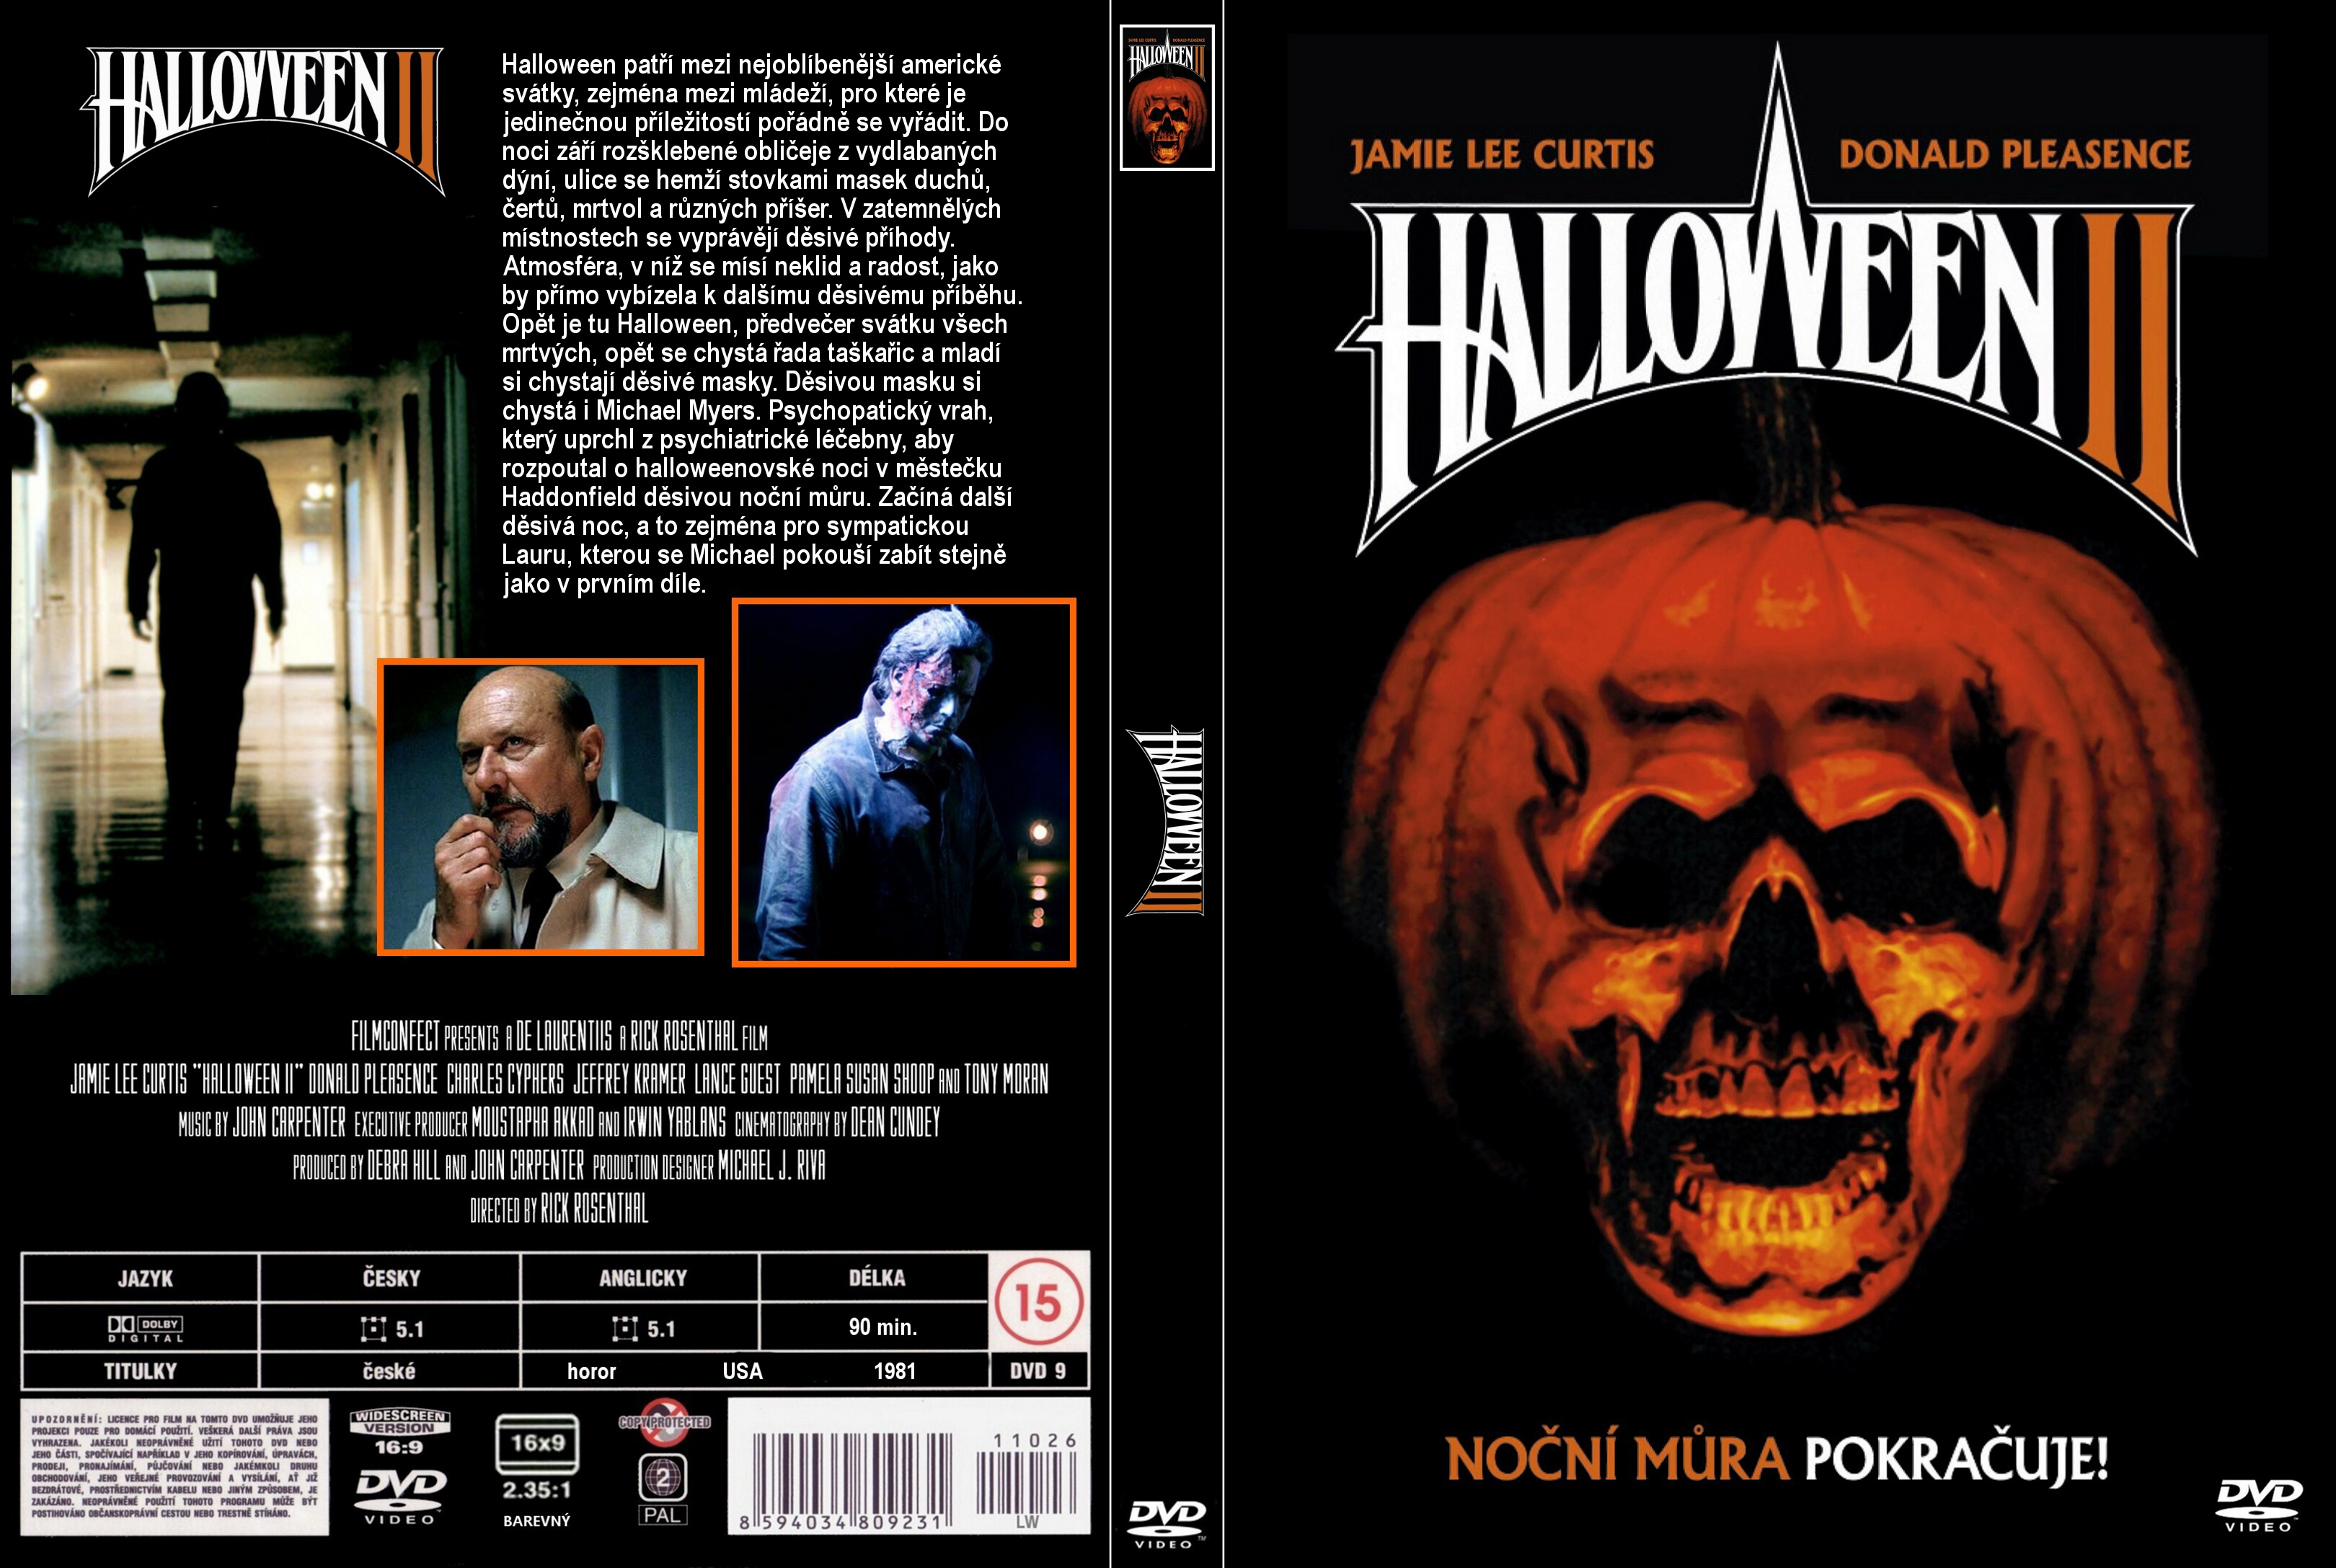 click here for full size image - Halloween 2 1981 Full Movie